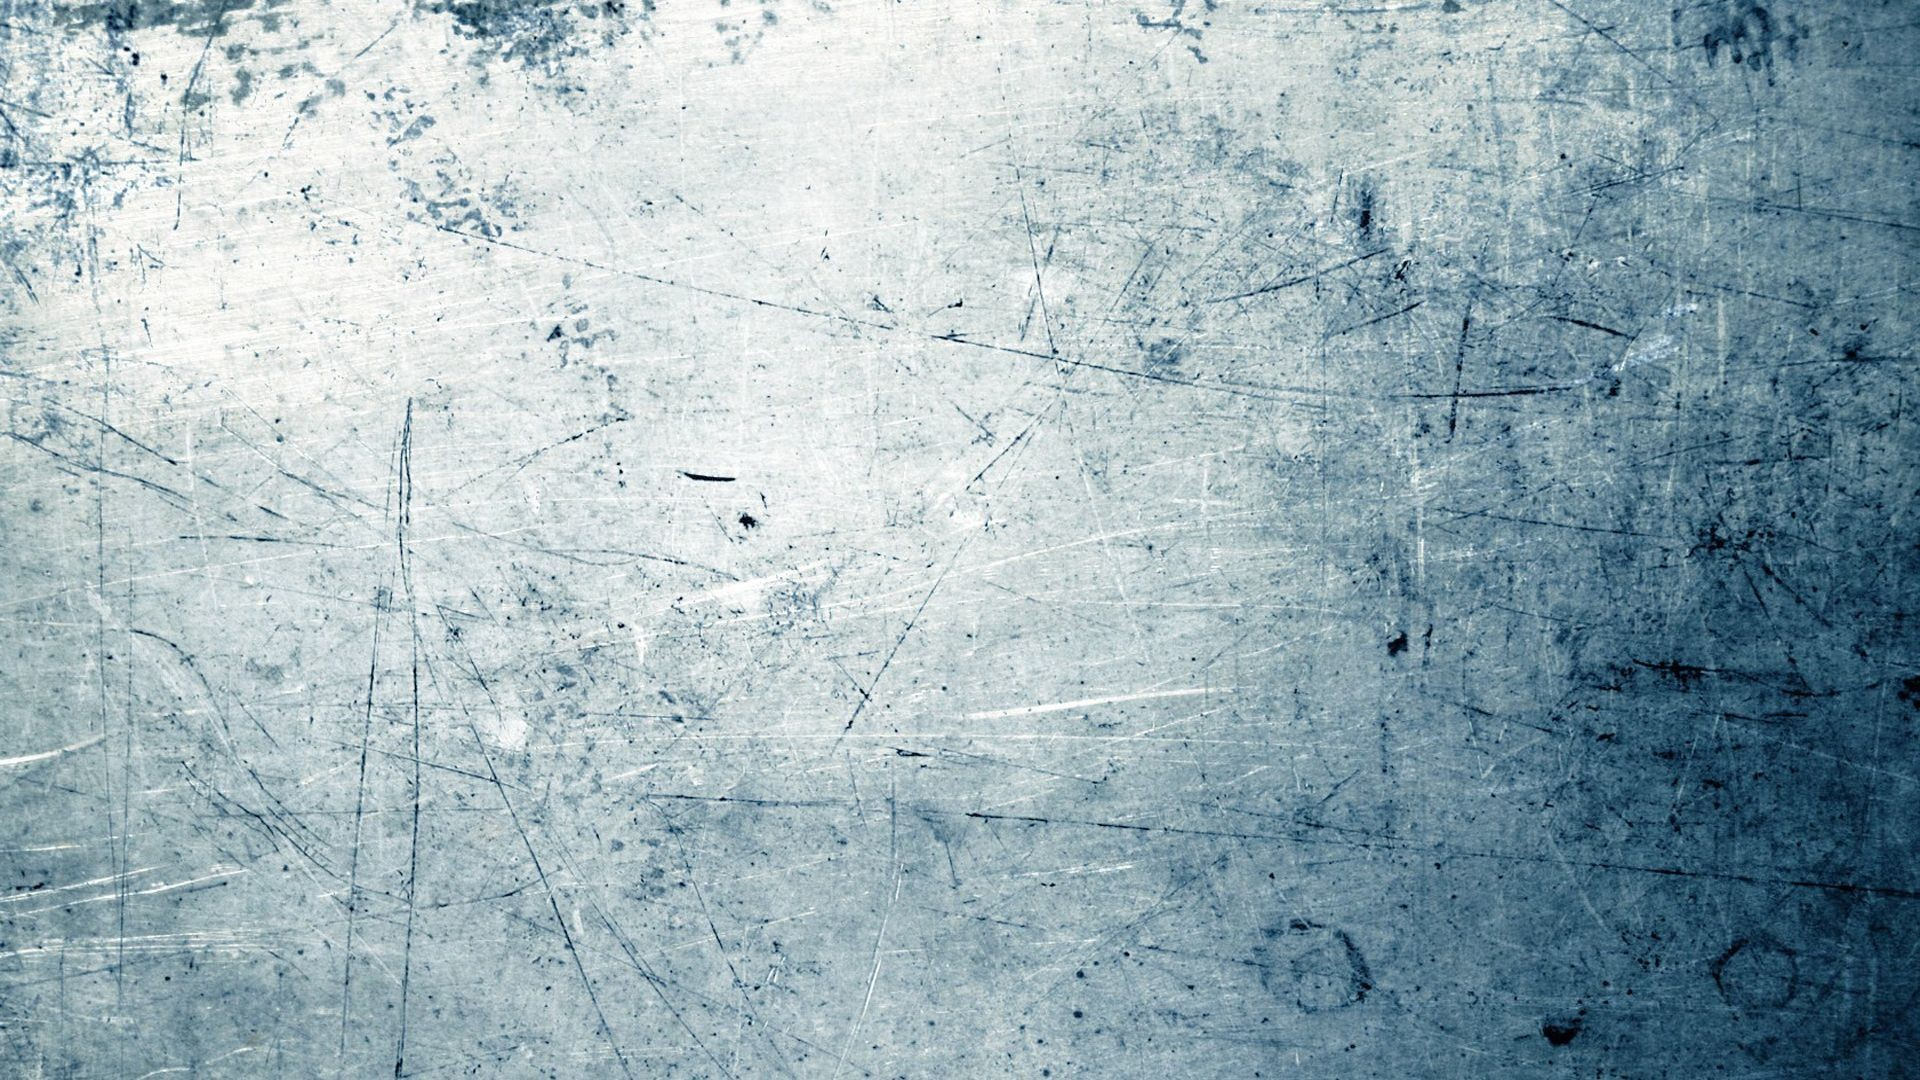 Res: 1920x1080, Grunge Wallpapers 8 - 1920 X 1080